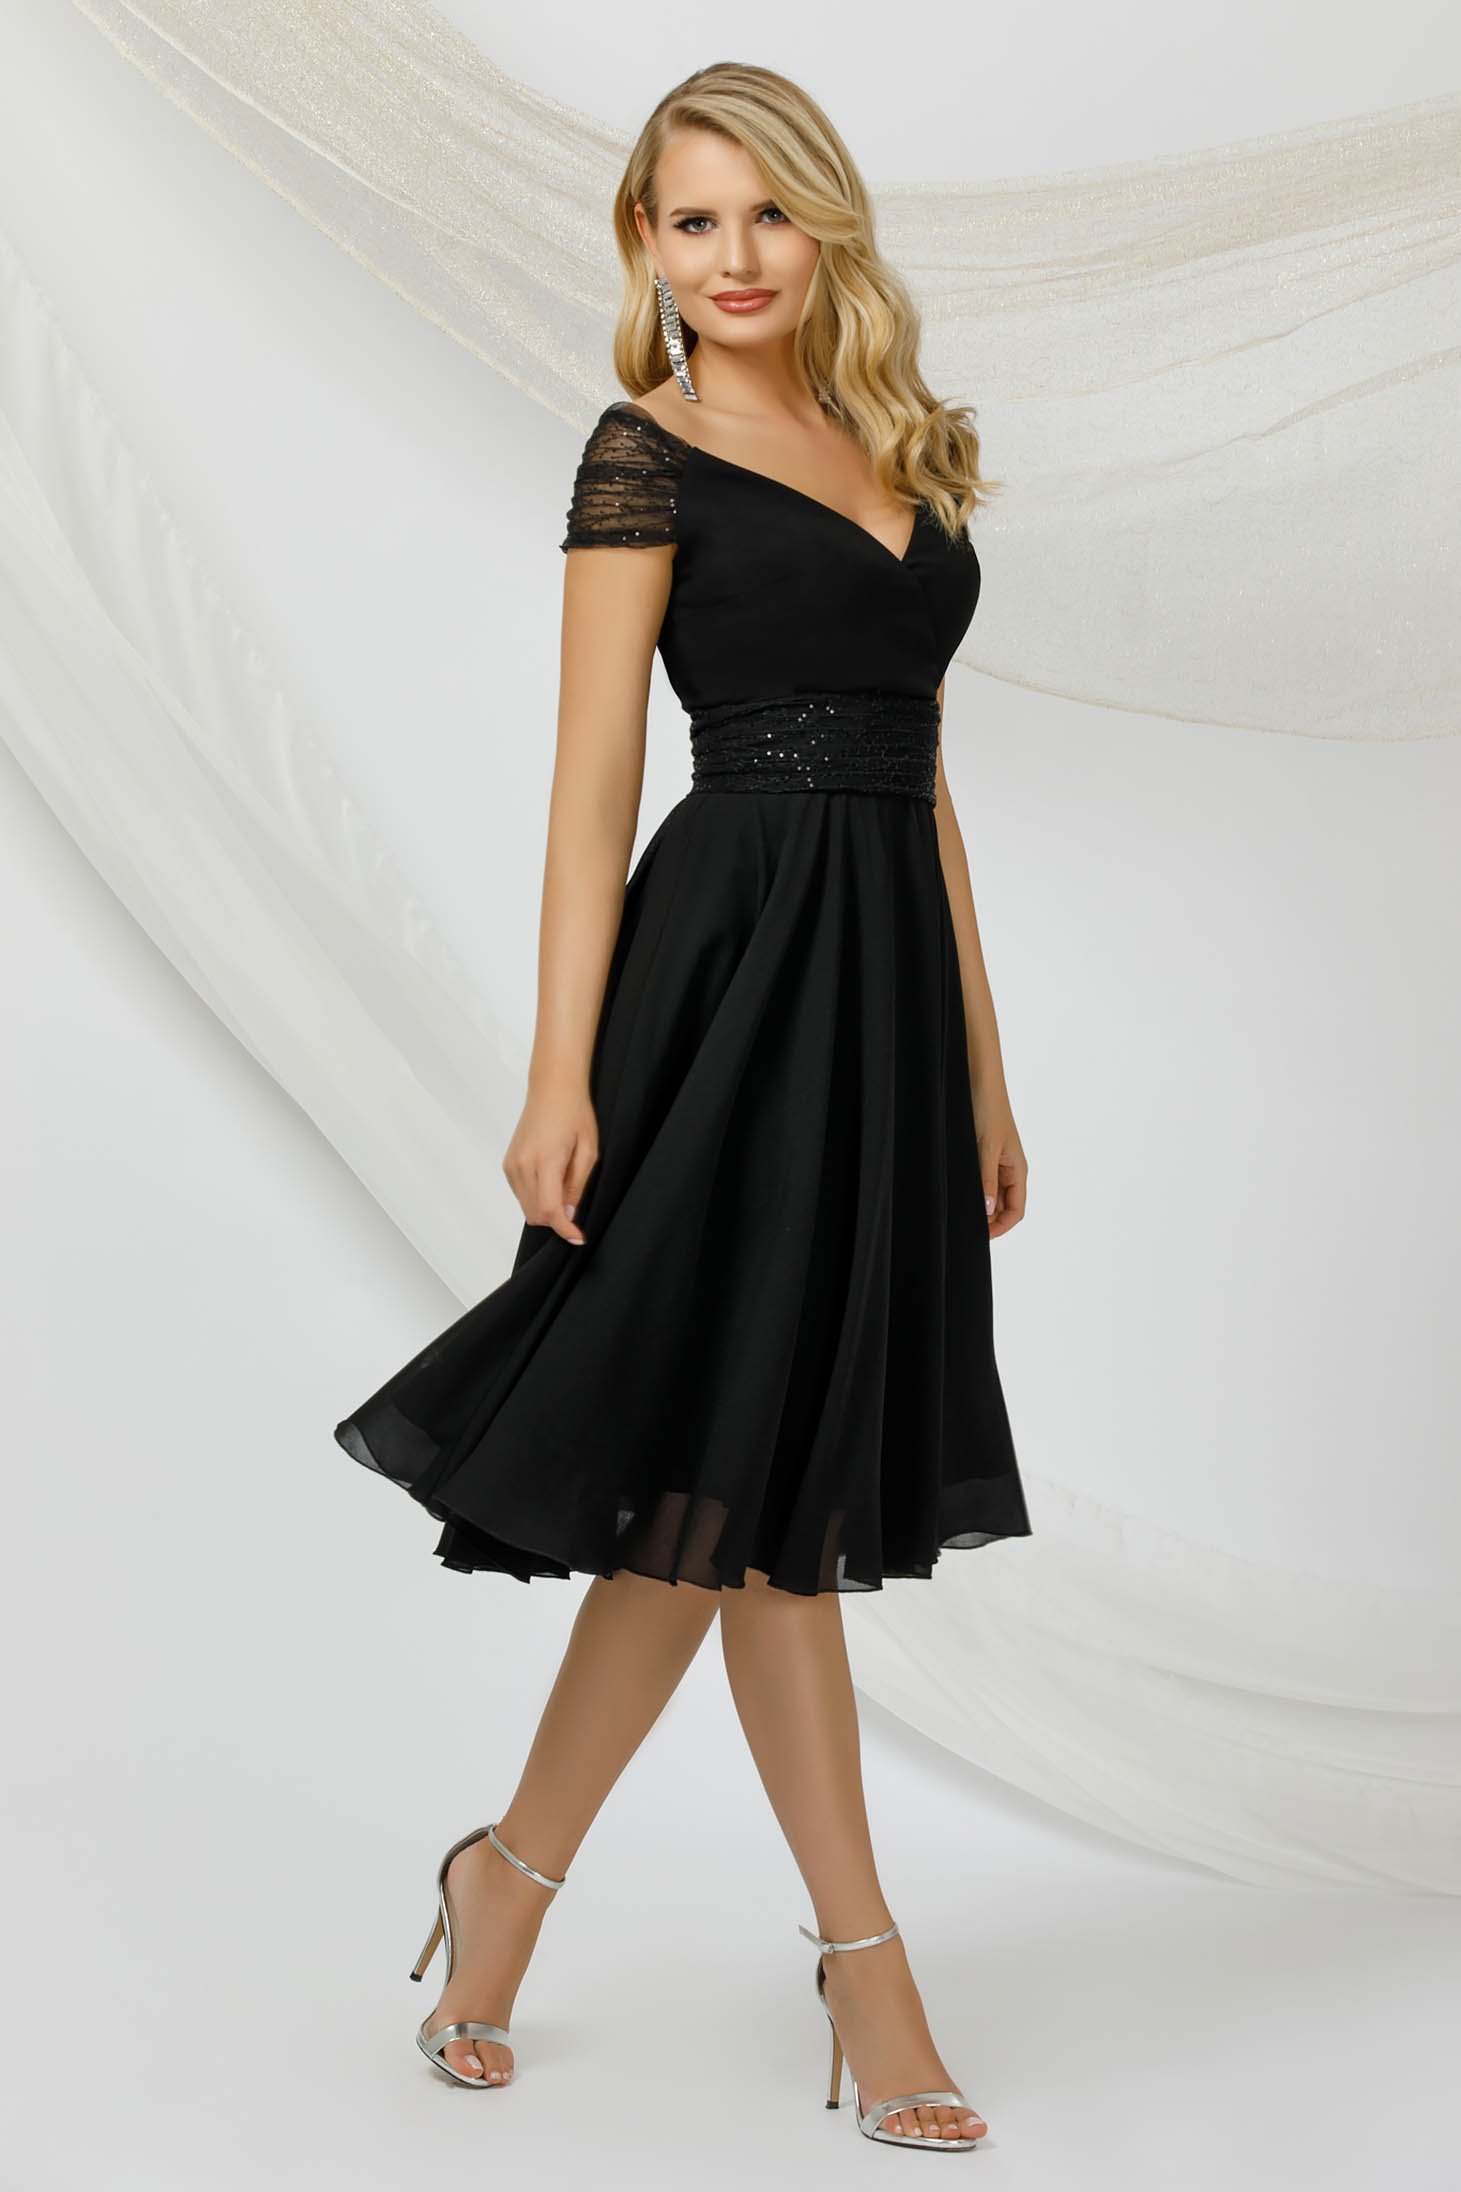 Black dress occasional thin fabric from veil fabric with sequin embellished details midi